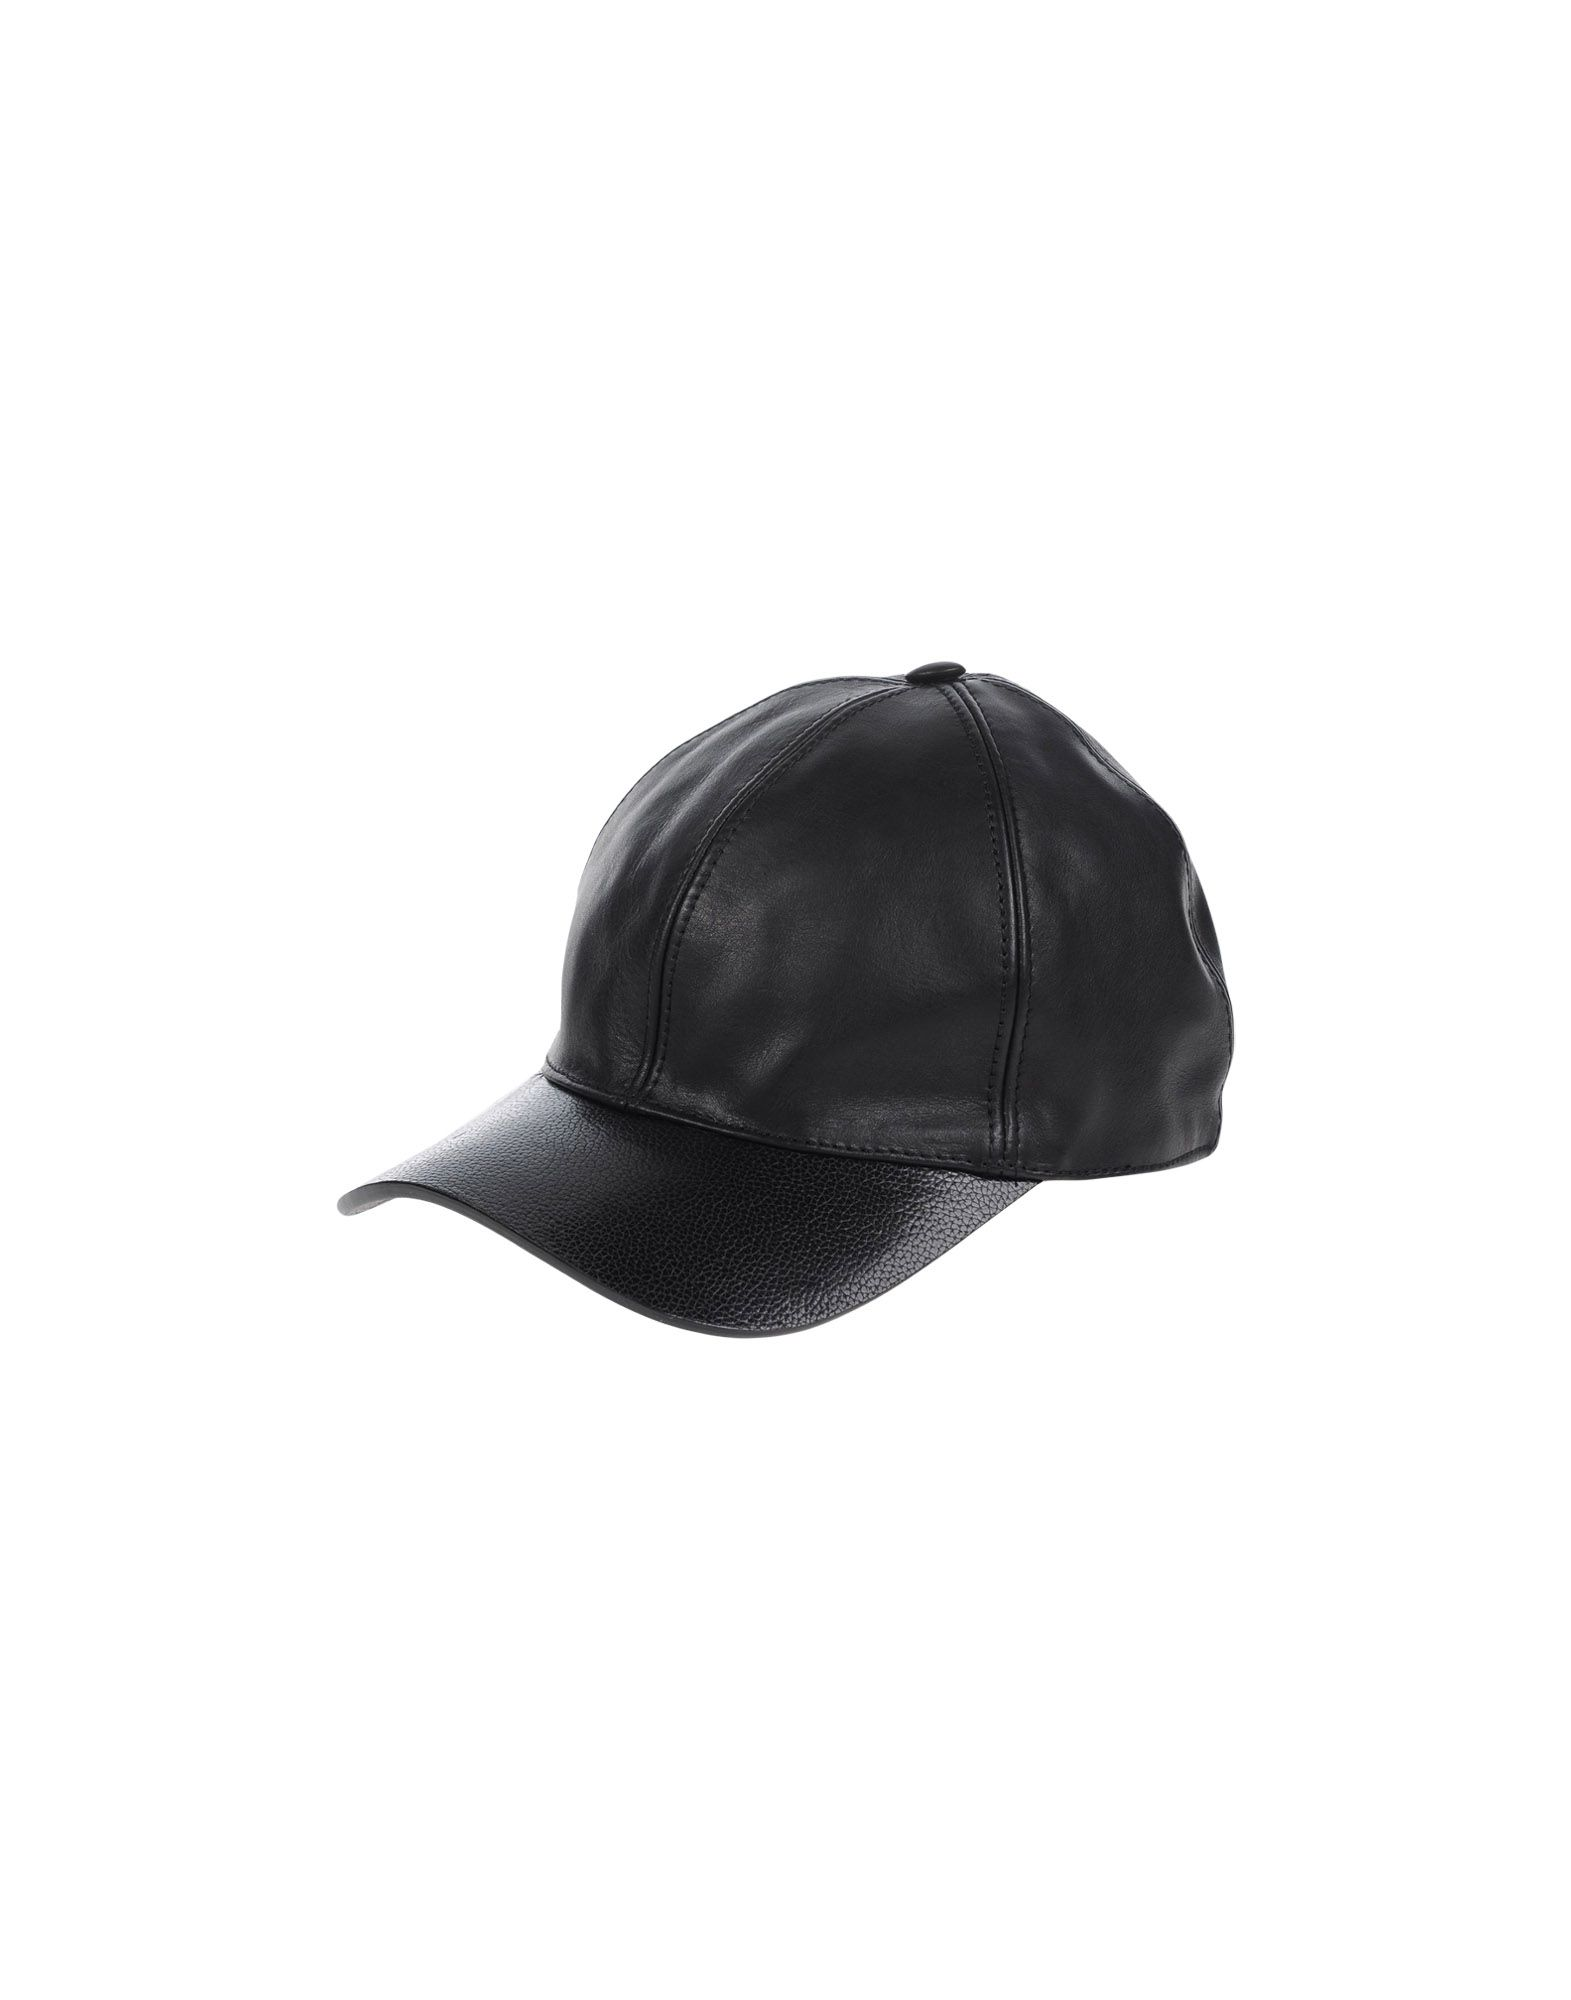 marc jacobs  marc jacobs hats